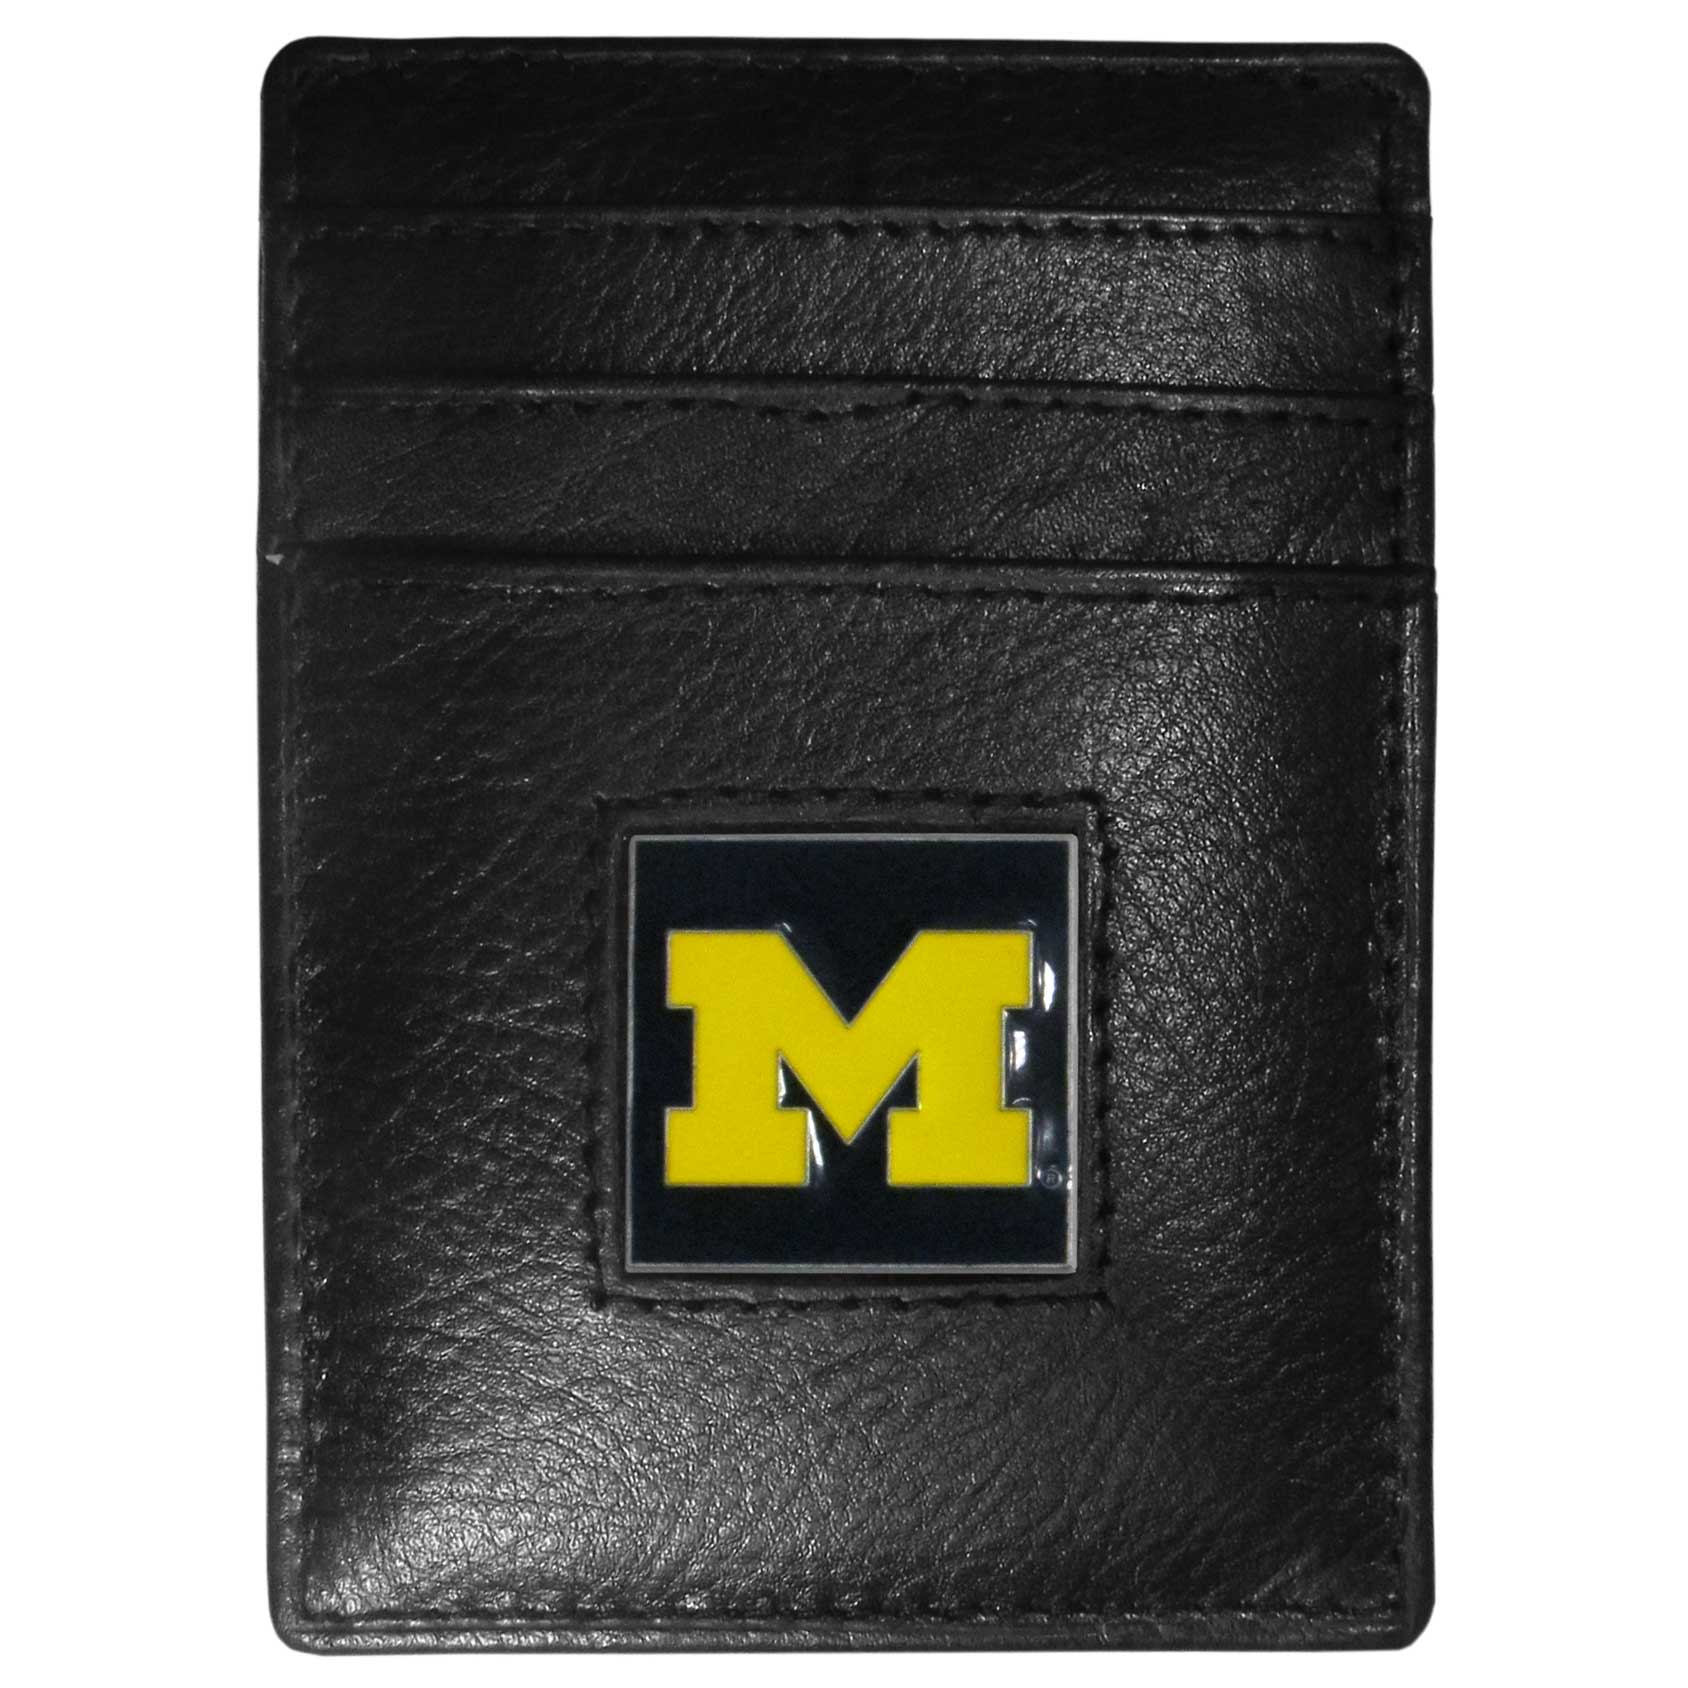 Michigan Wolverines Leather Money Clip/Cardholder - Our officially licensed Money Clip/Card Holders won't make you choose between paper or plastic because they stow both easily. Features our sculpted and enameled Michigan Wolverines emblem on the front of the wallet.